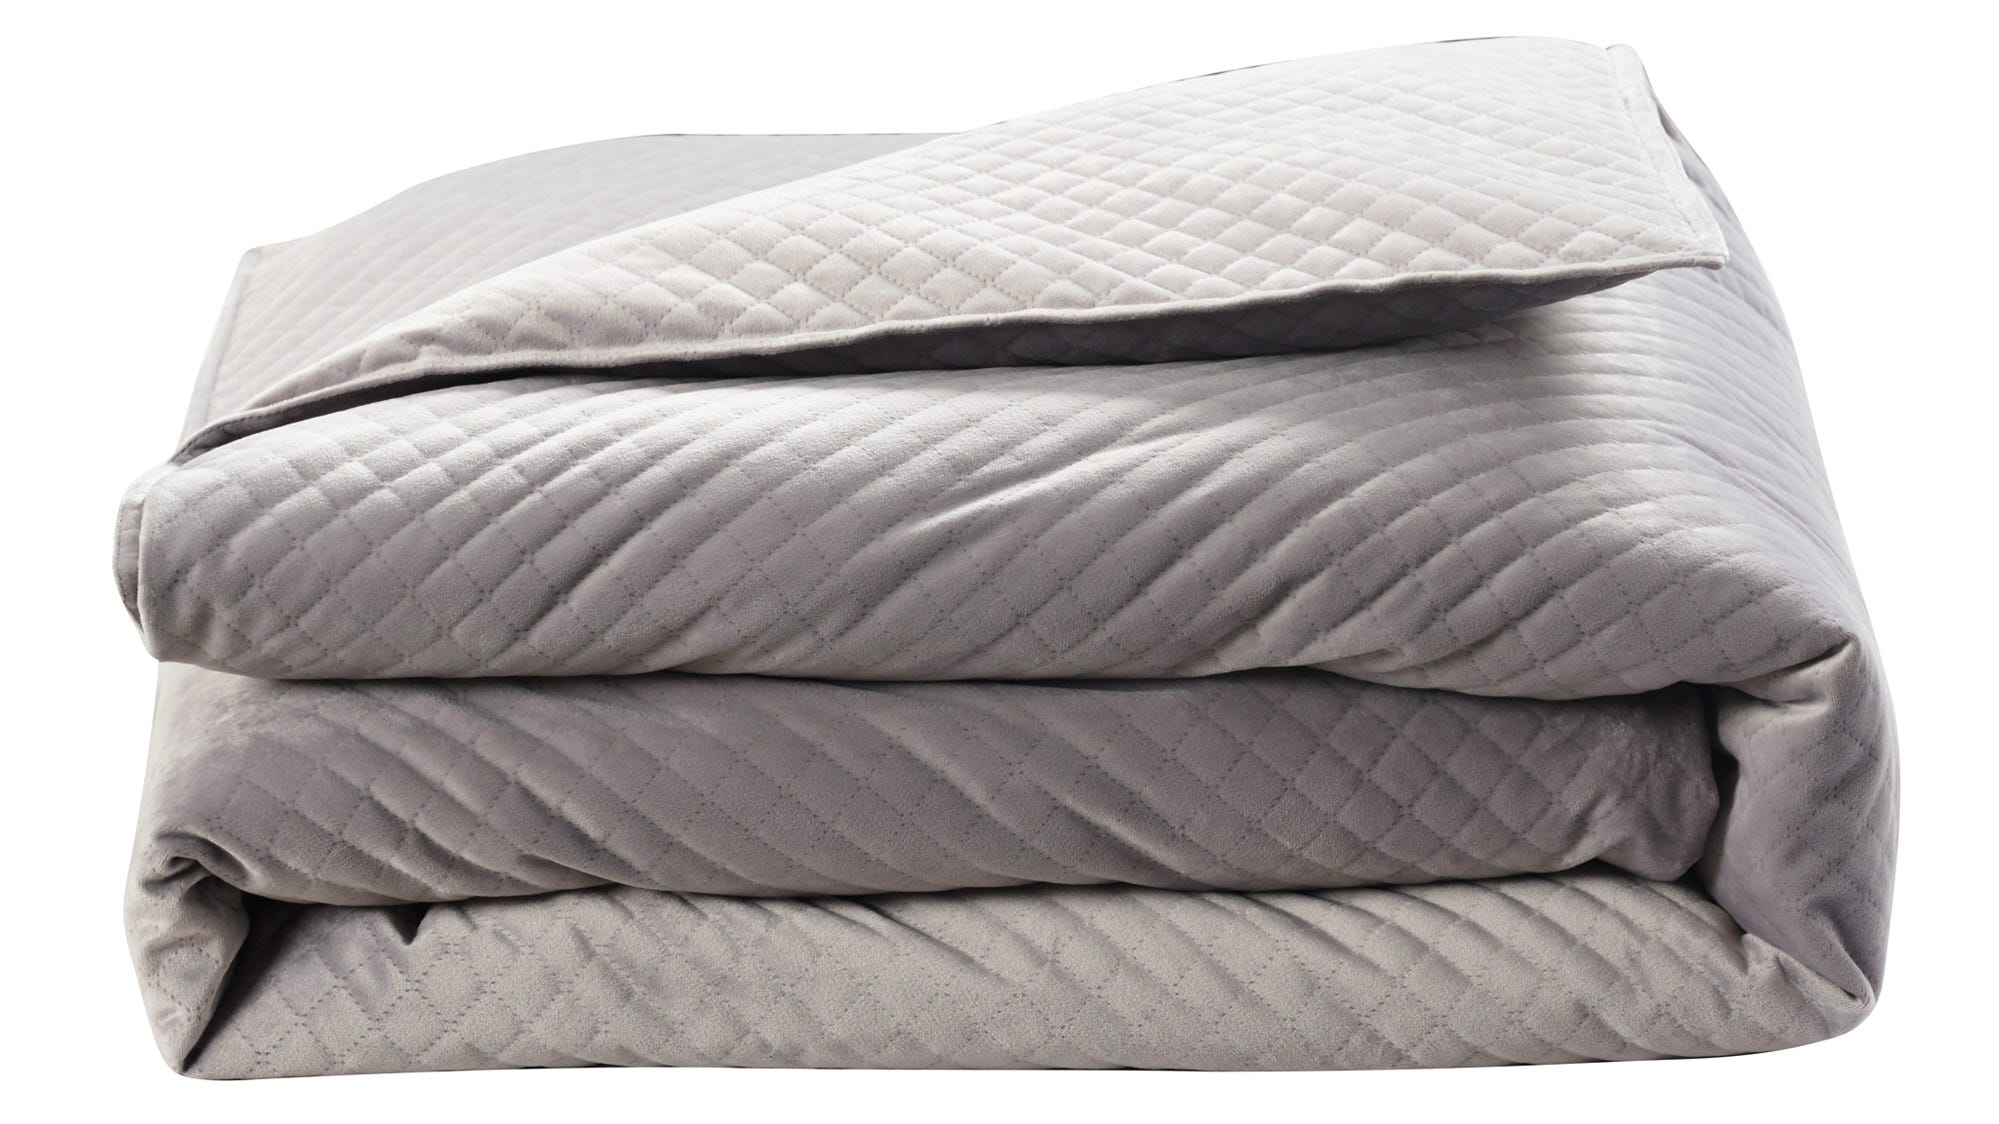 Weighted Blanket Options